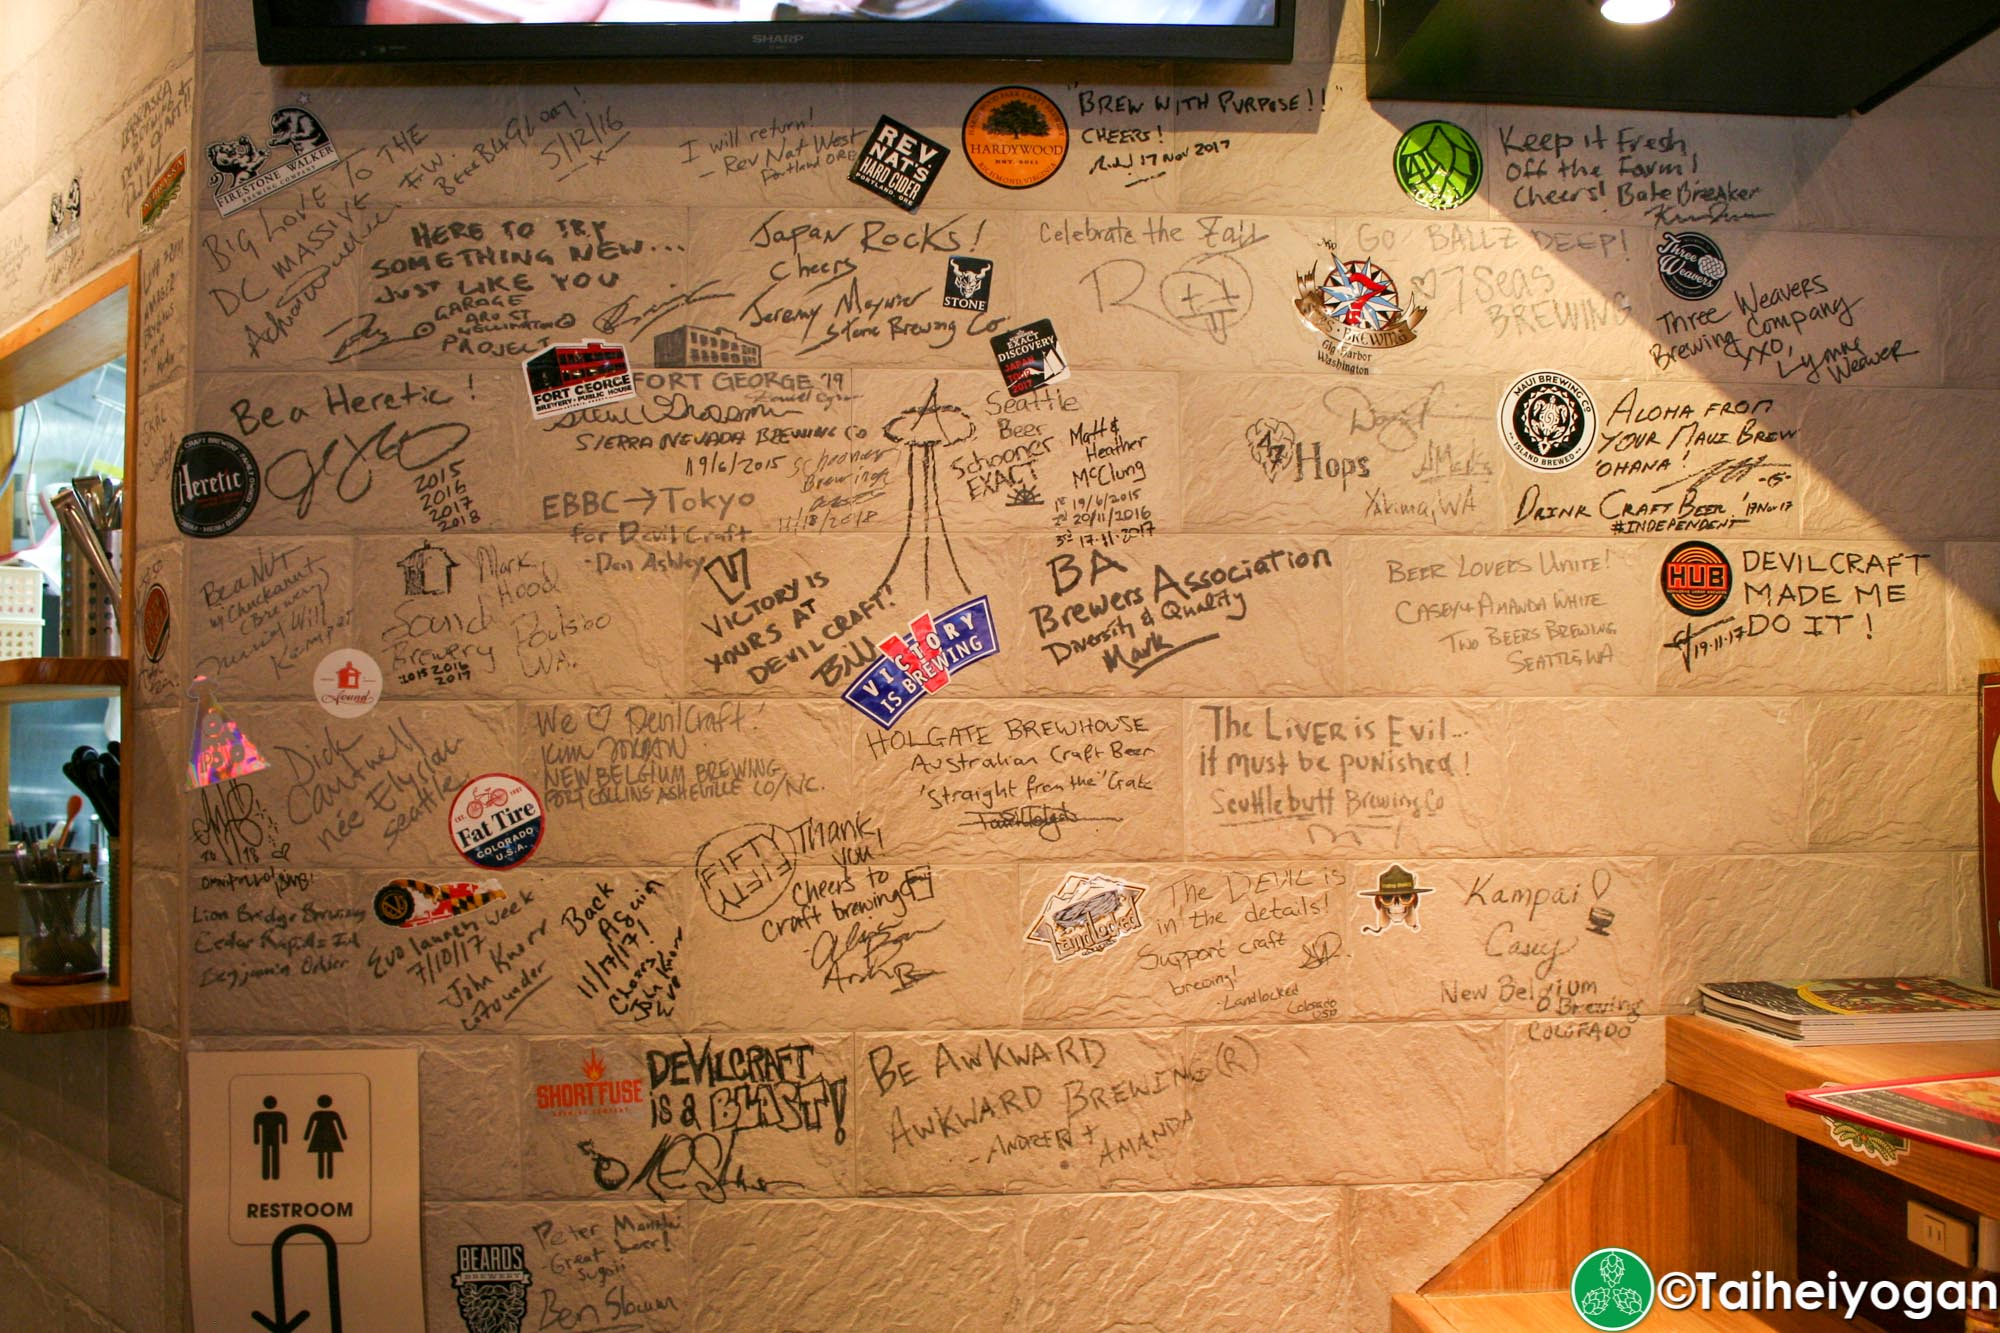 DevilCraft (Hamamtsucho・浜松町店) - Interior - Wall of Fame